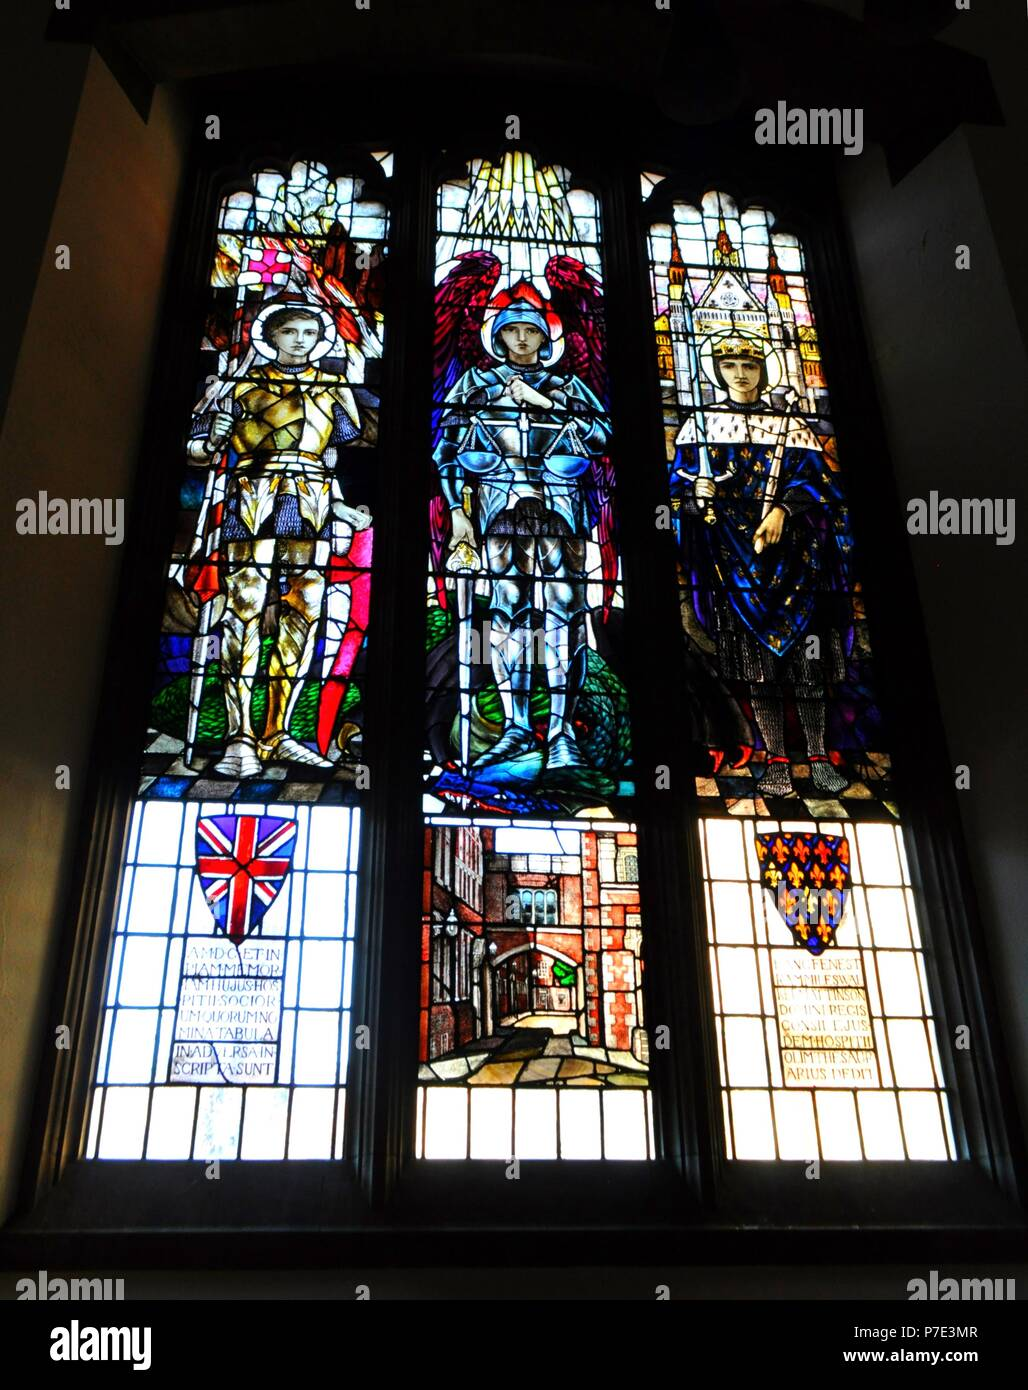 Stained glass window in Gray's Inn Chapel on South Square, London, UK. - Stock Image